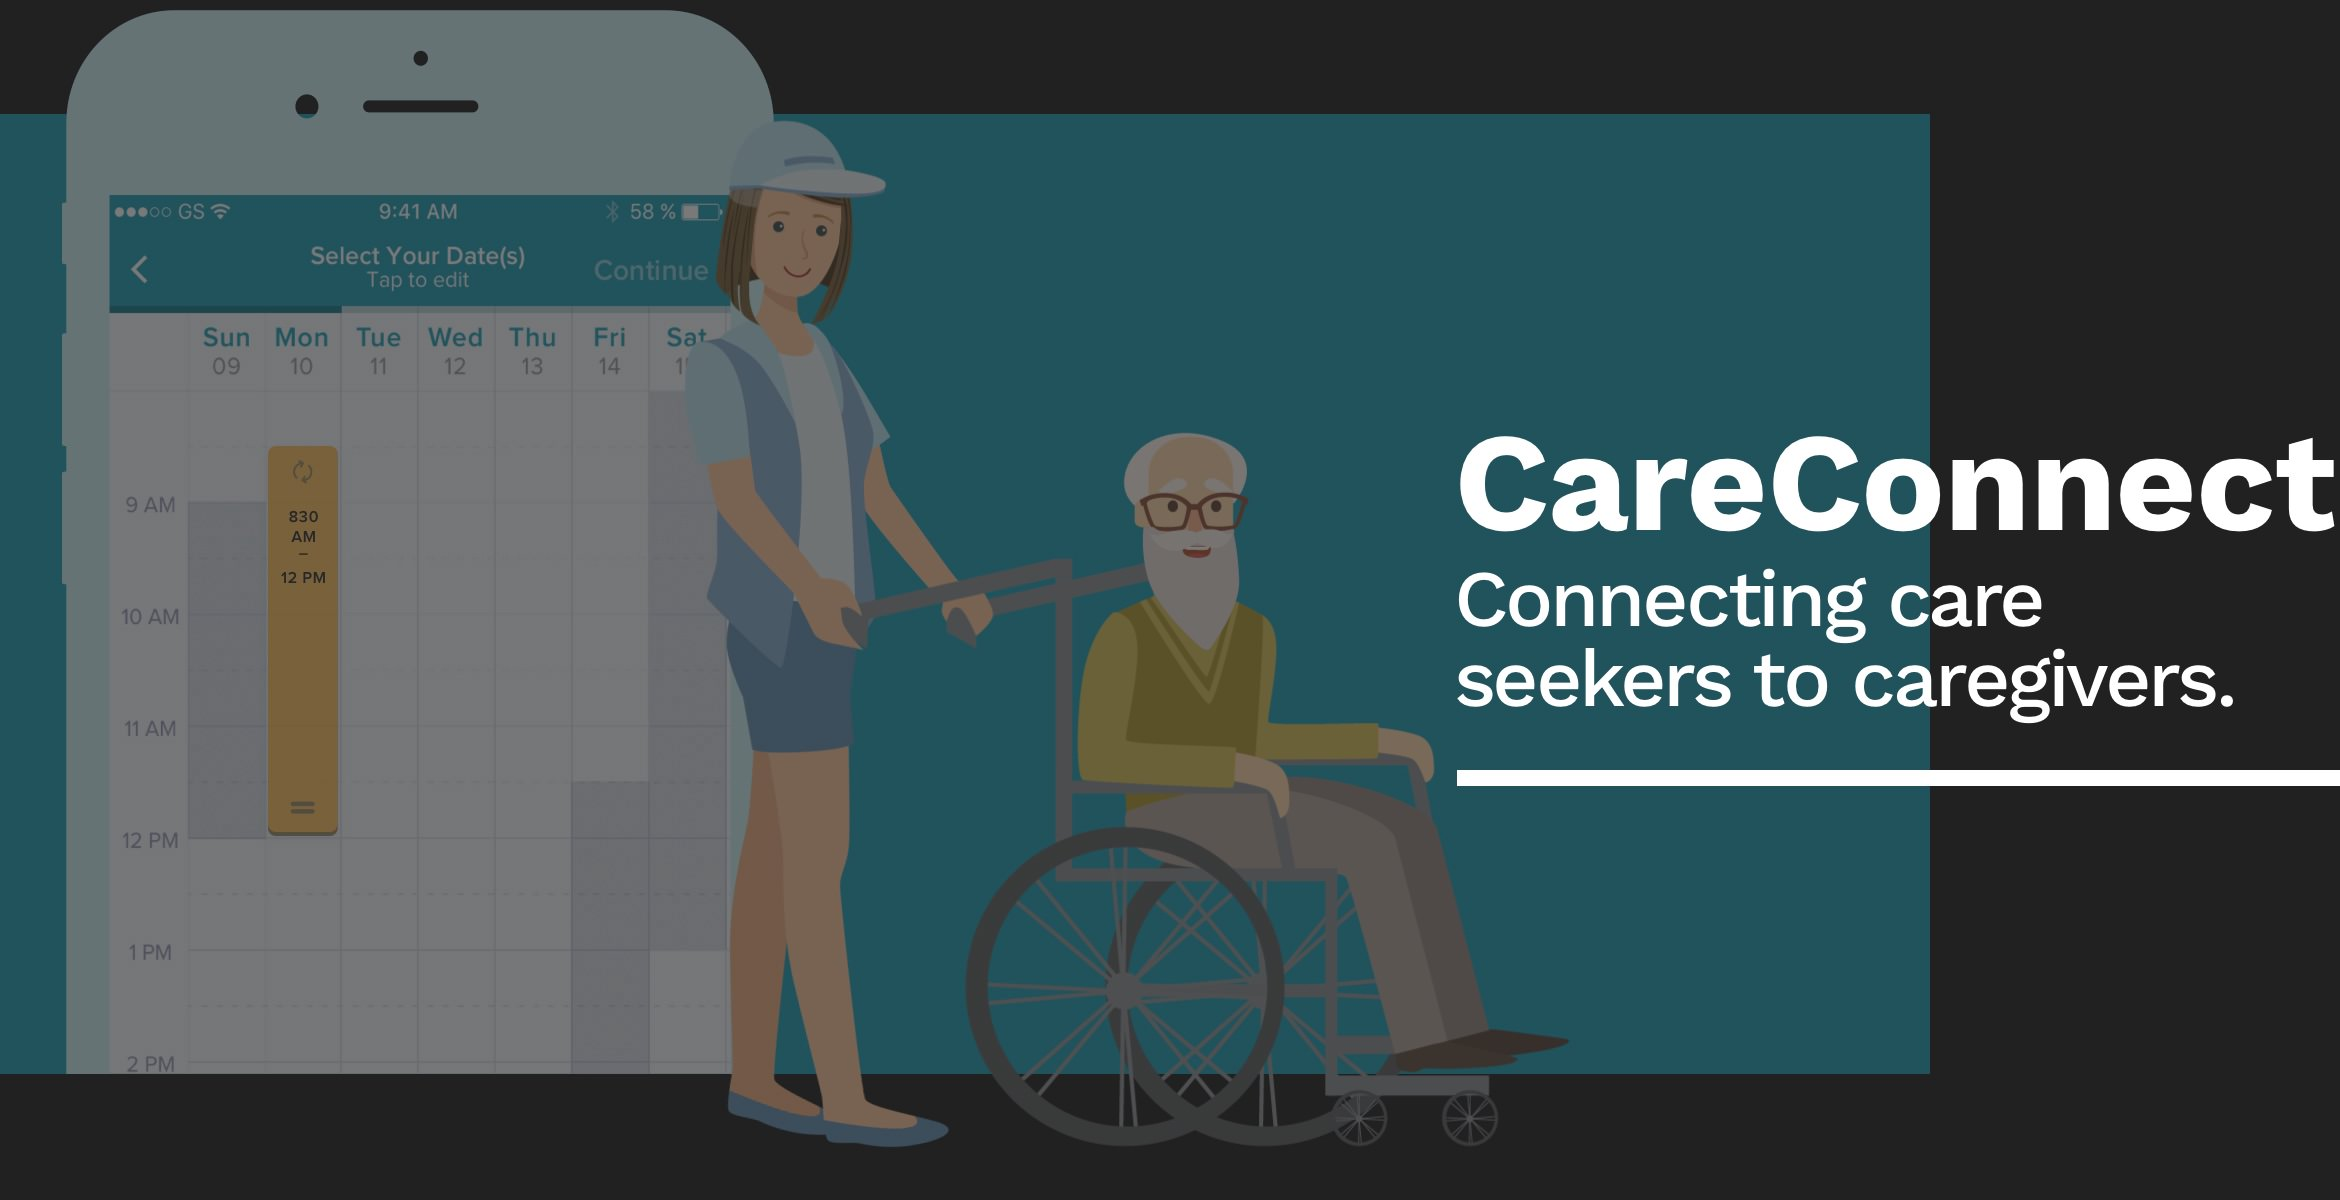 CareConnect